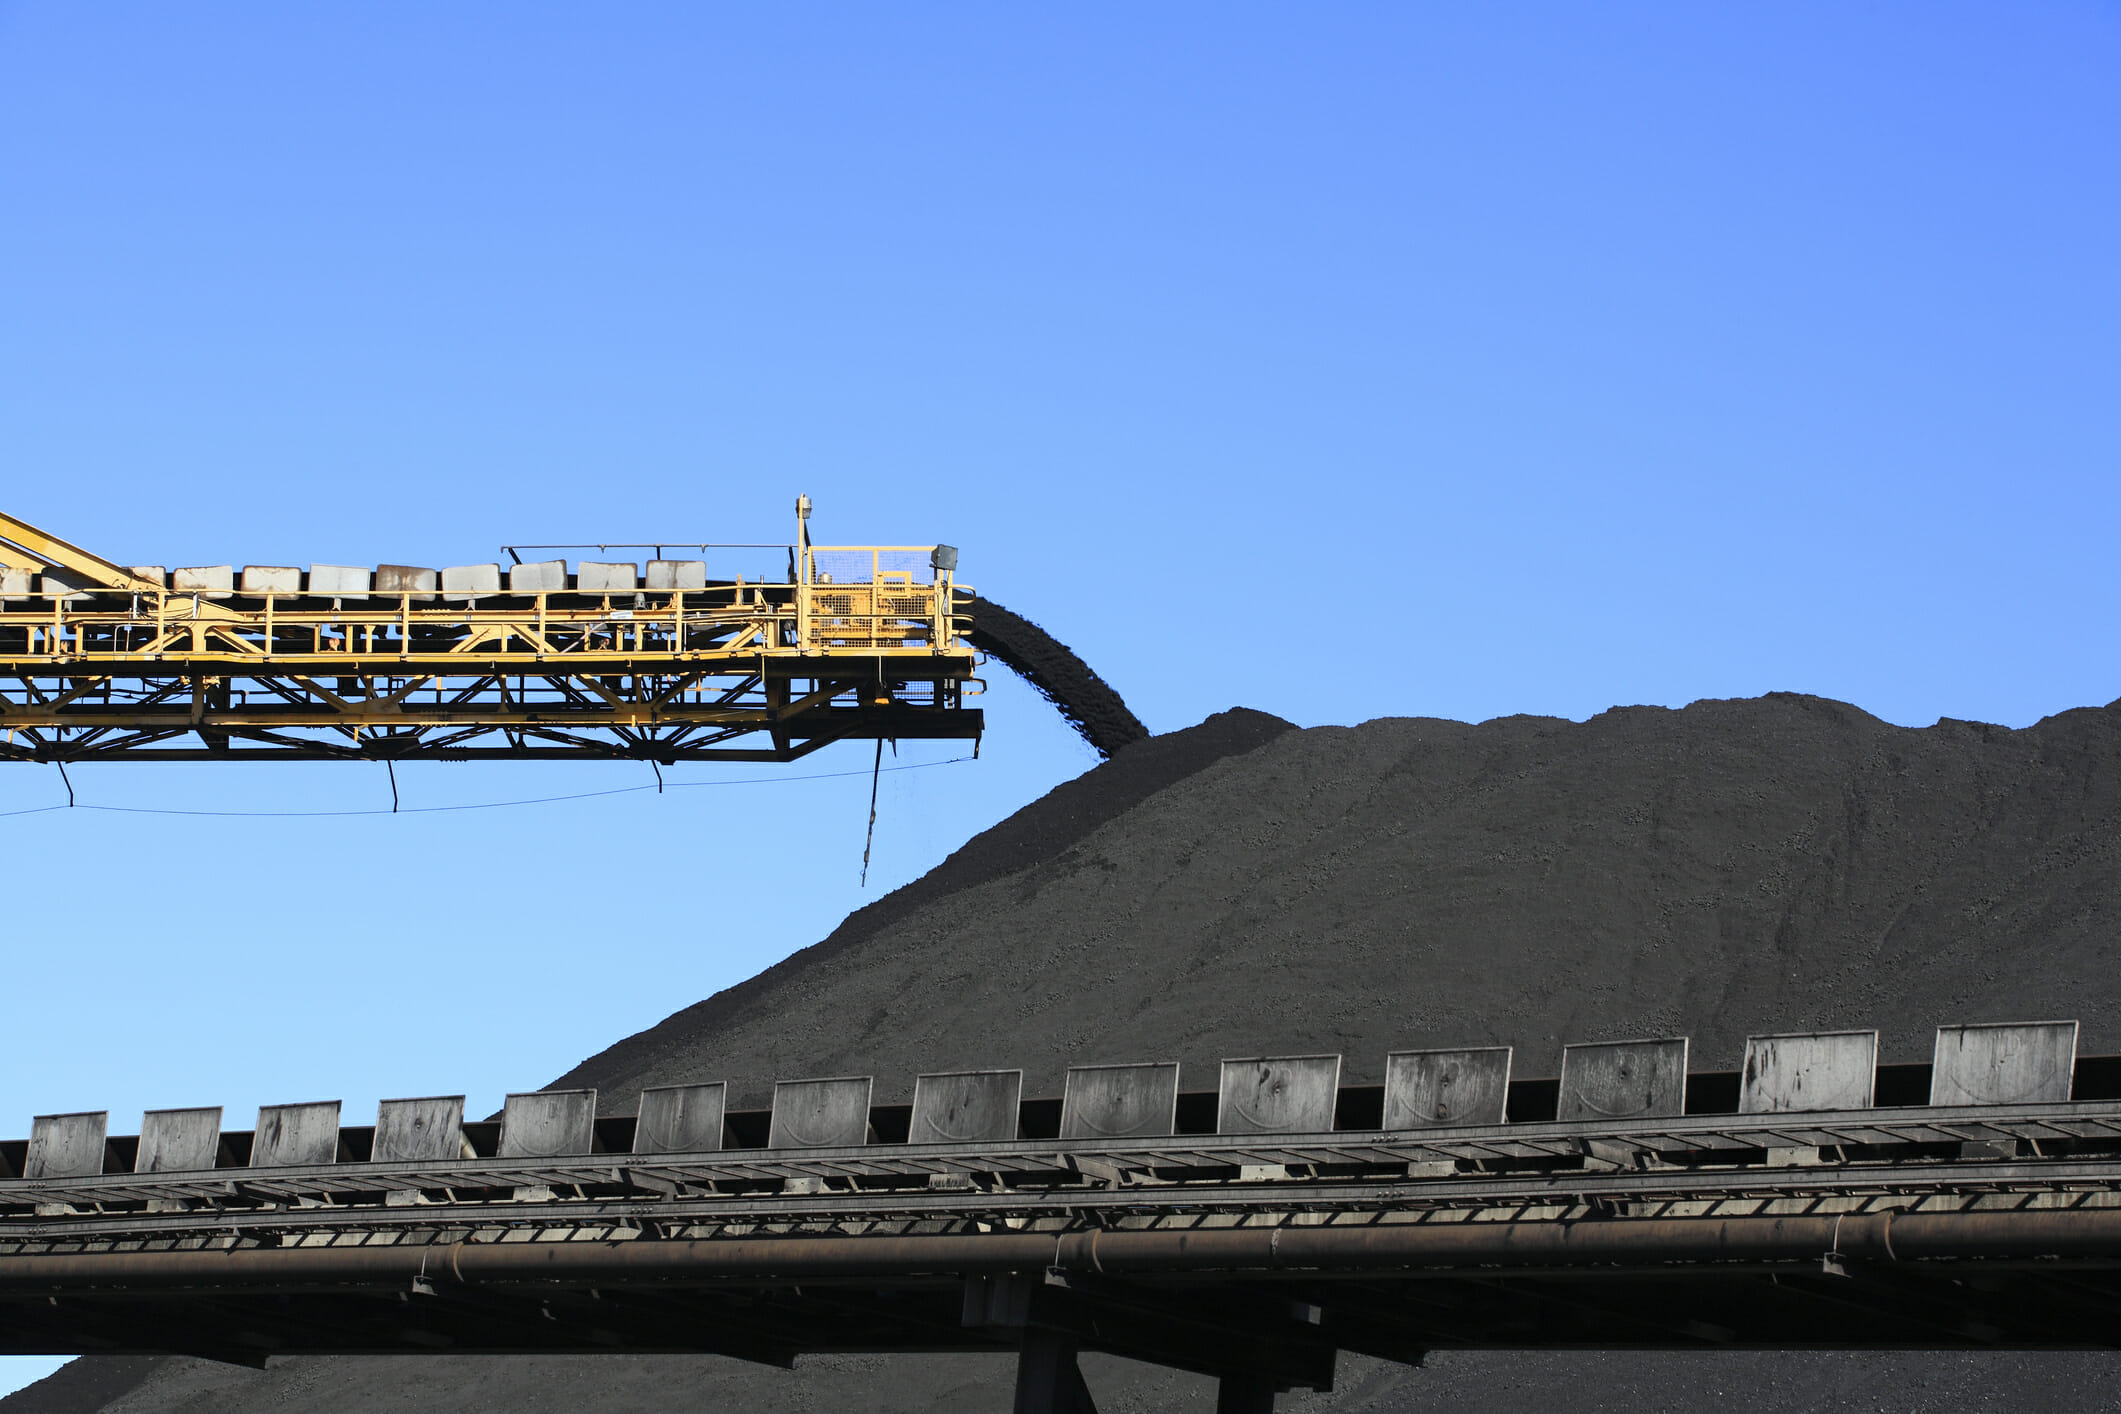 A conveyor belt carrying coal.